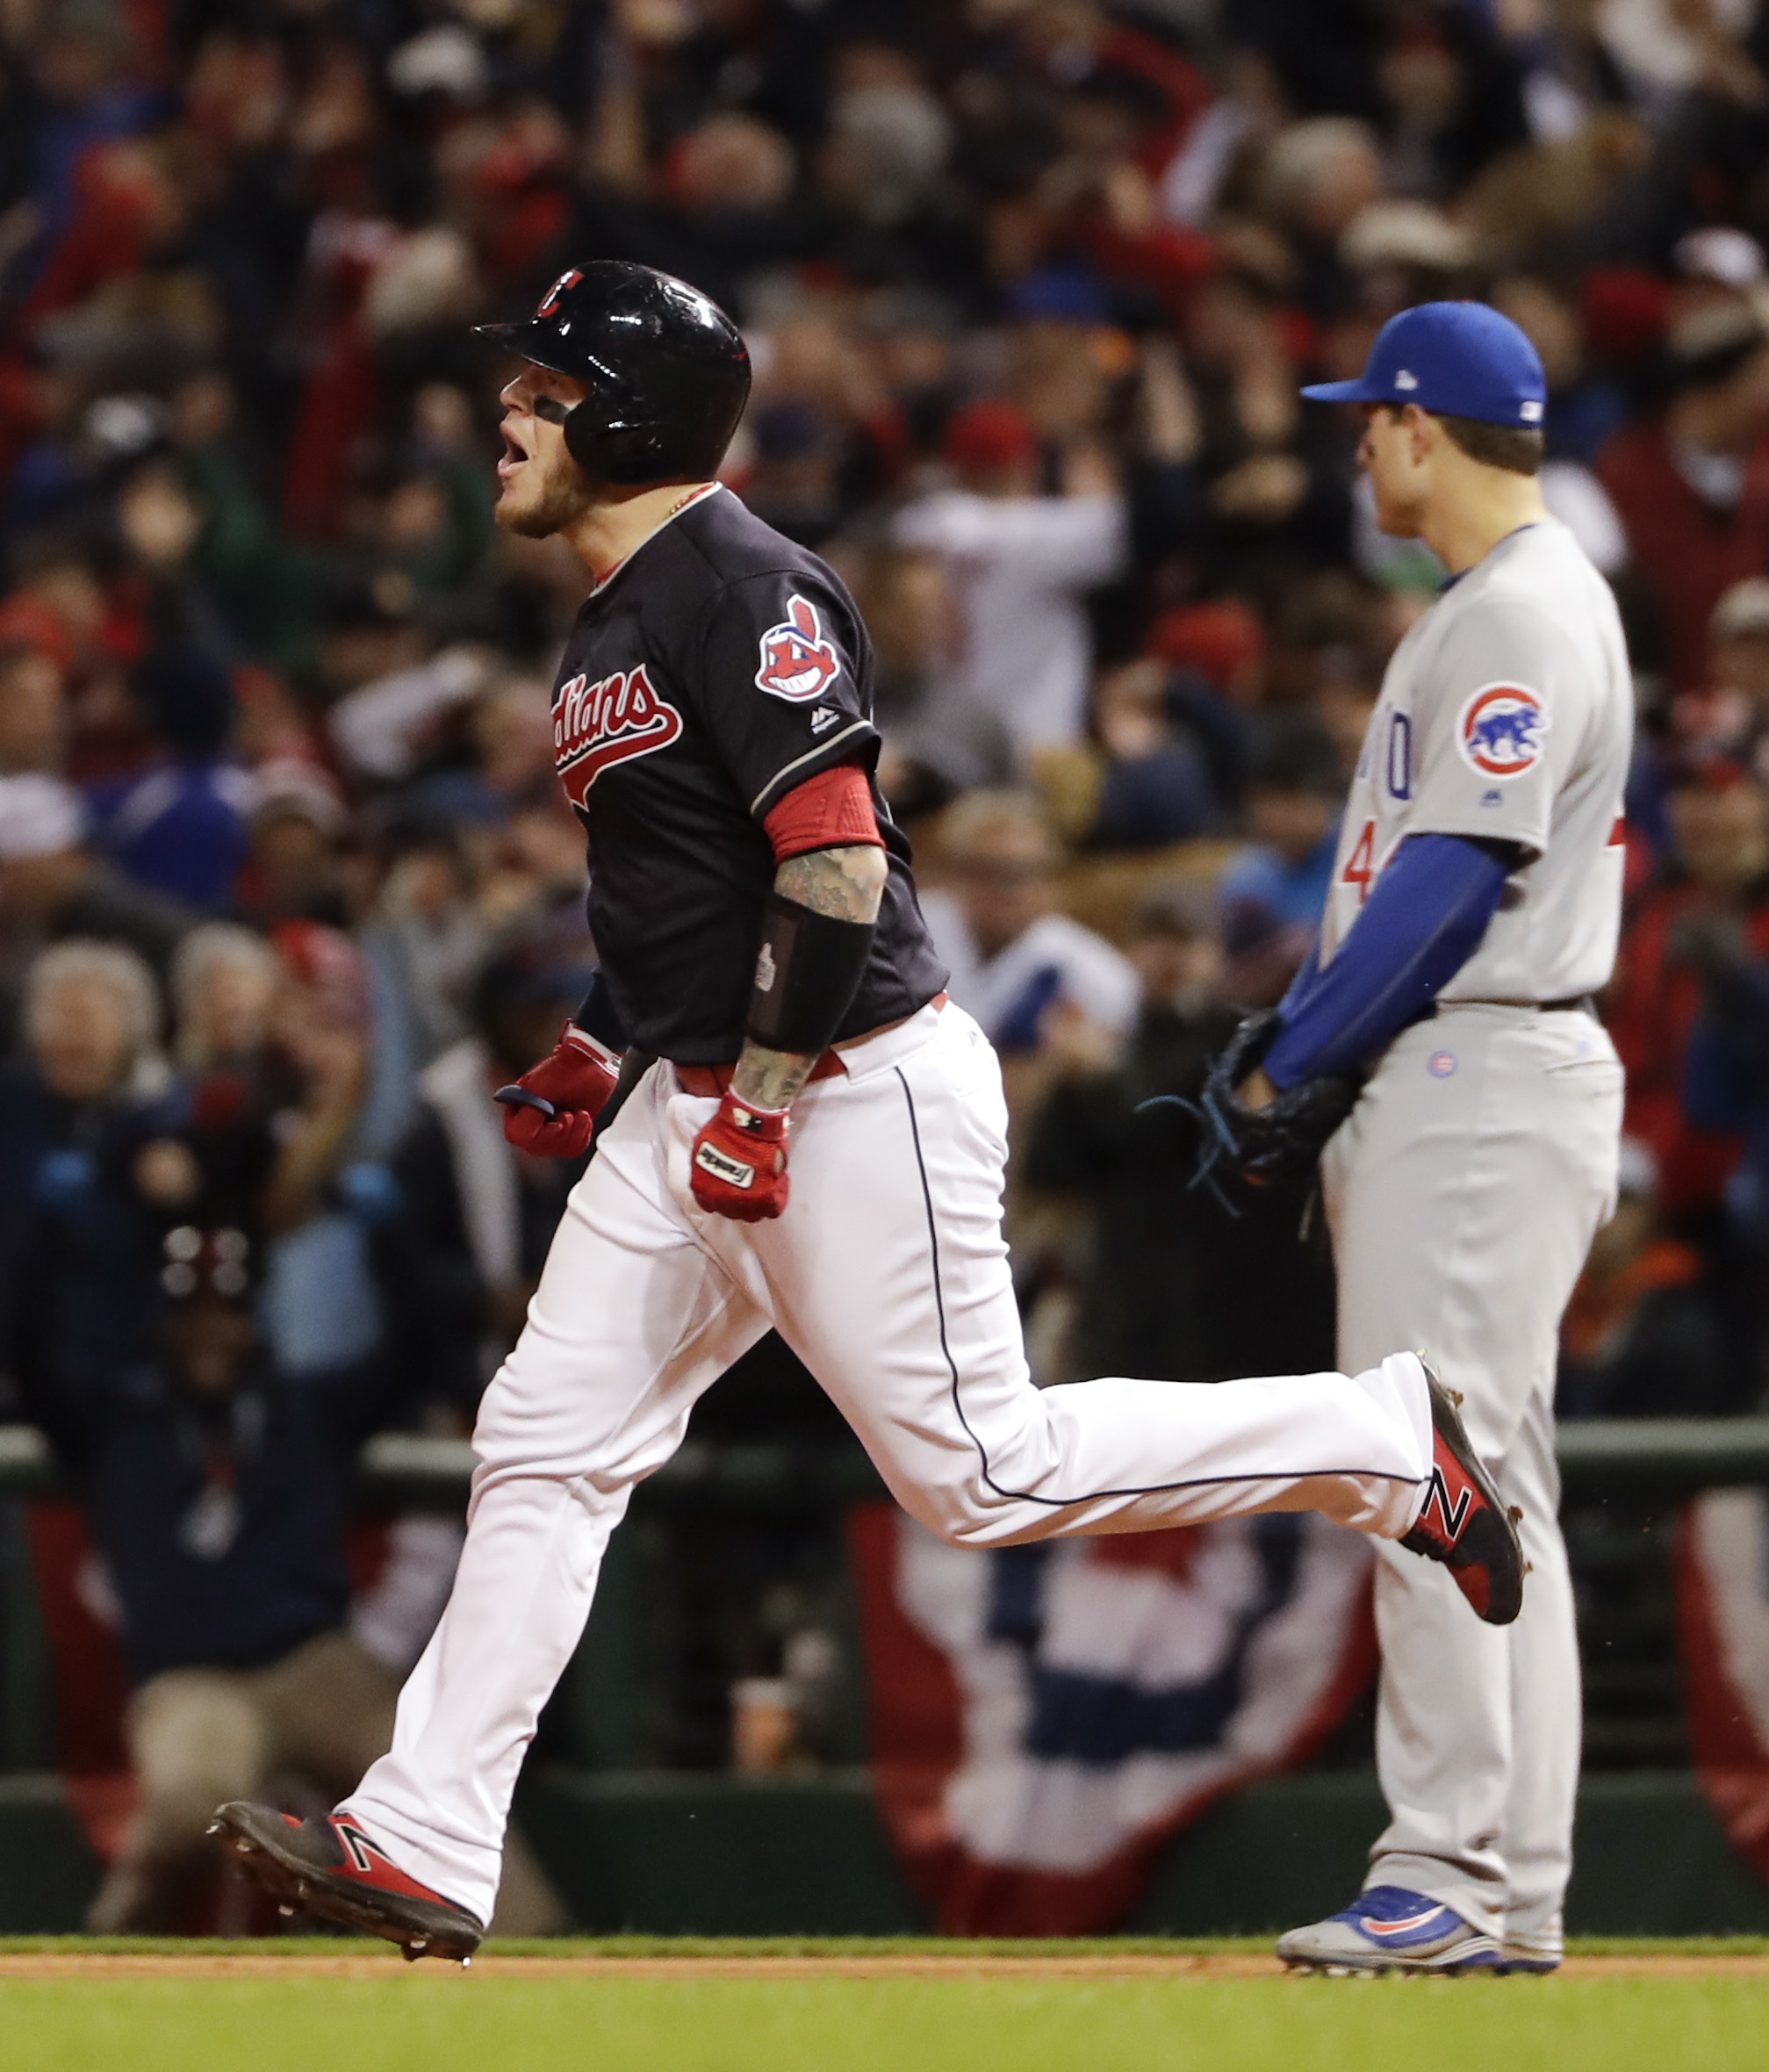 Cleveland Indians' Roberto Perez celebrates after his home run against the Chicago Cubs during the eighth inning of Game 1 of the Major League Baseball World Series Tuesday, Oct. 25, 2016, in Cleveland. (AP Photo/Matt Slocum)